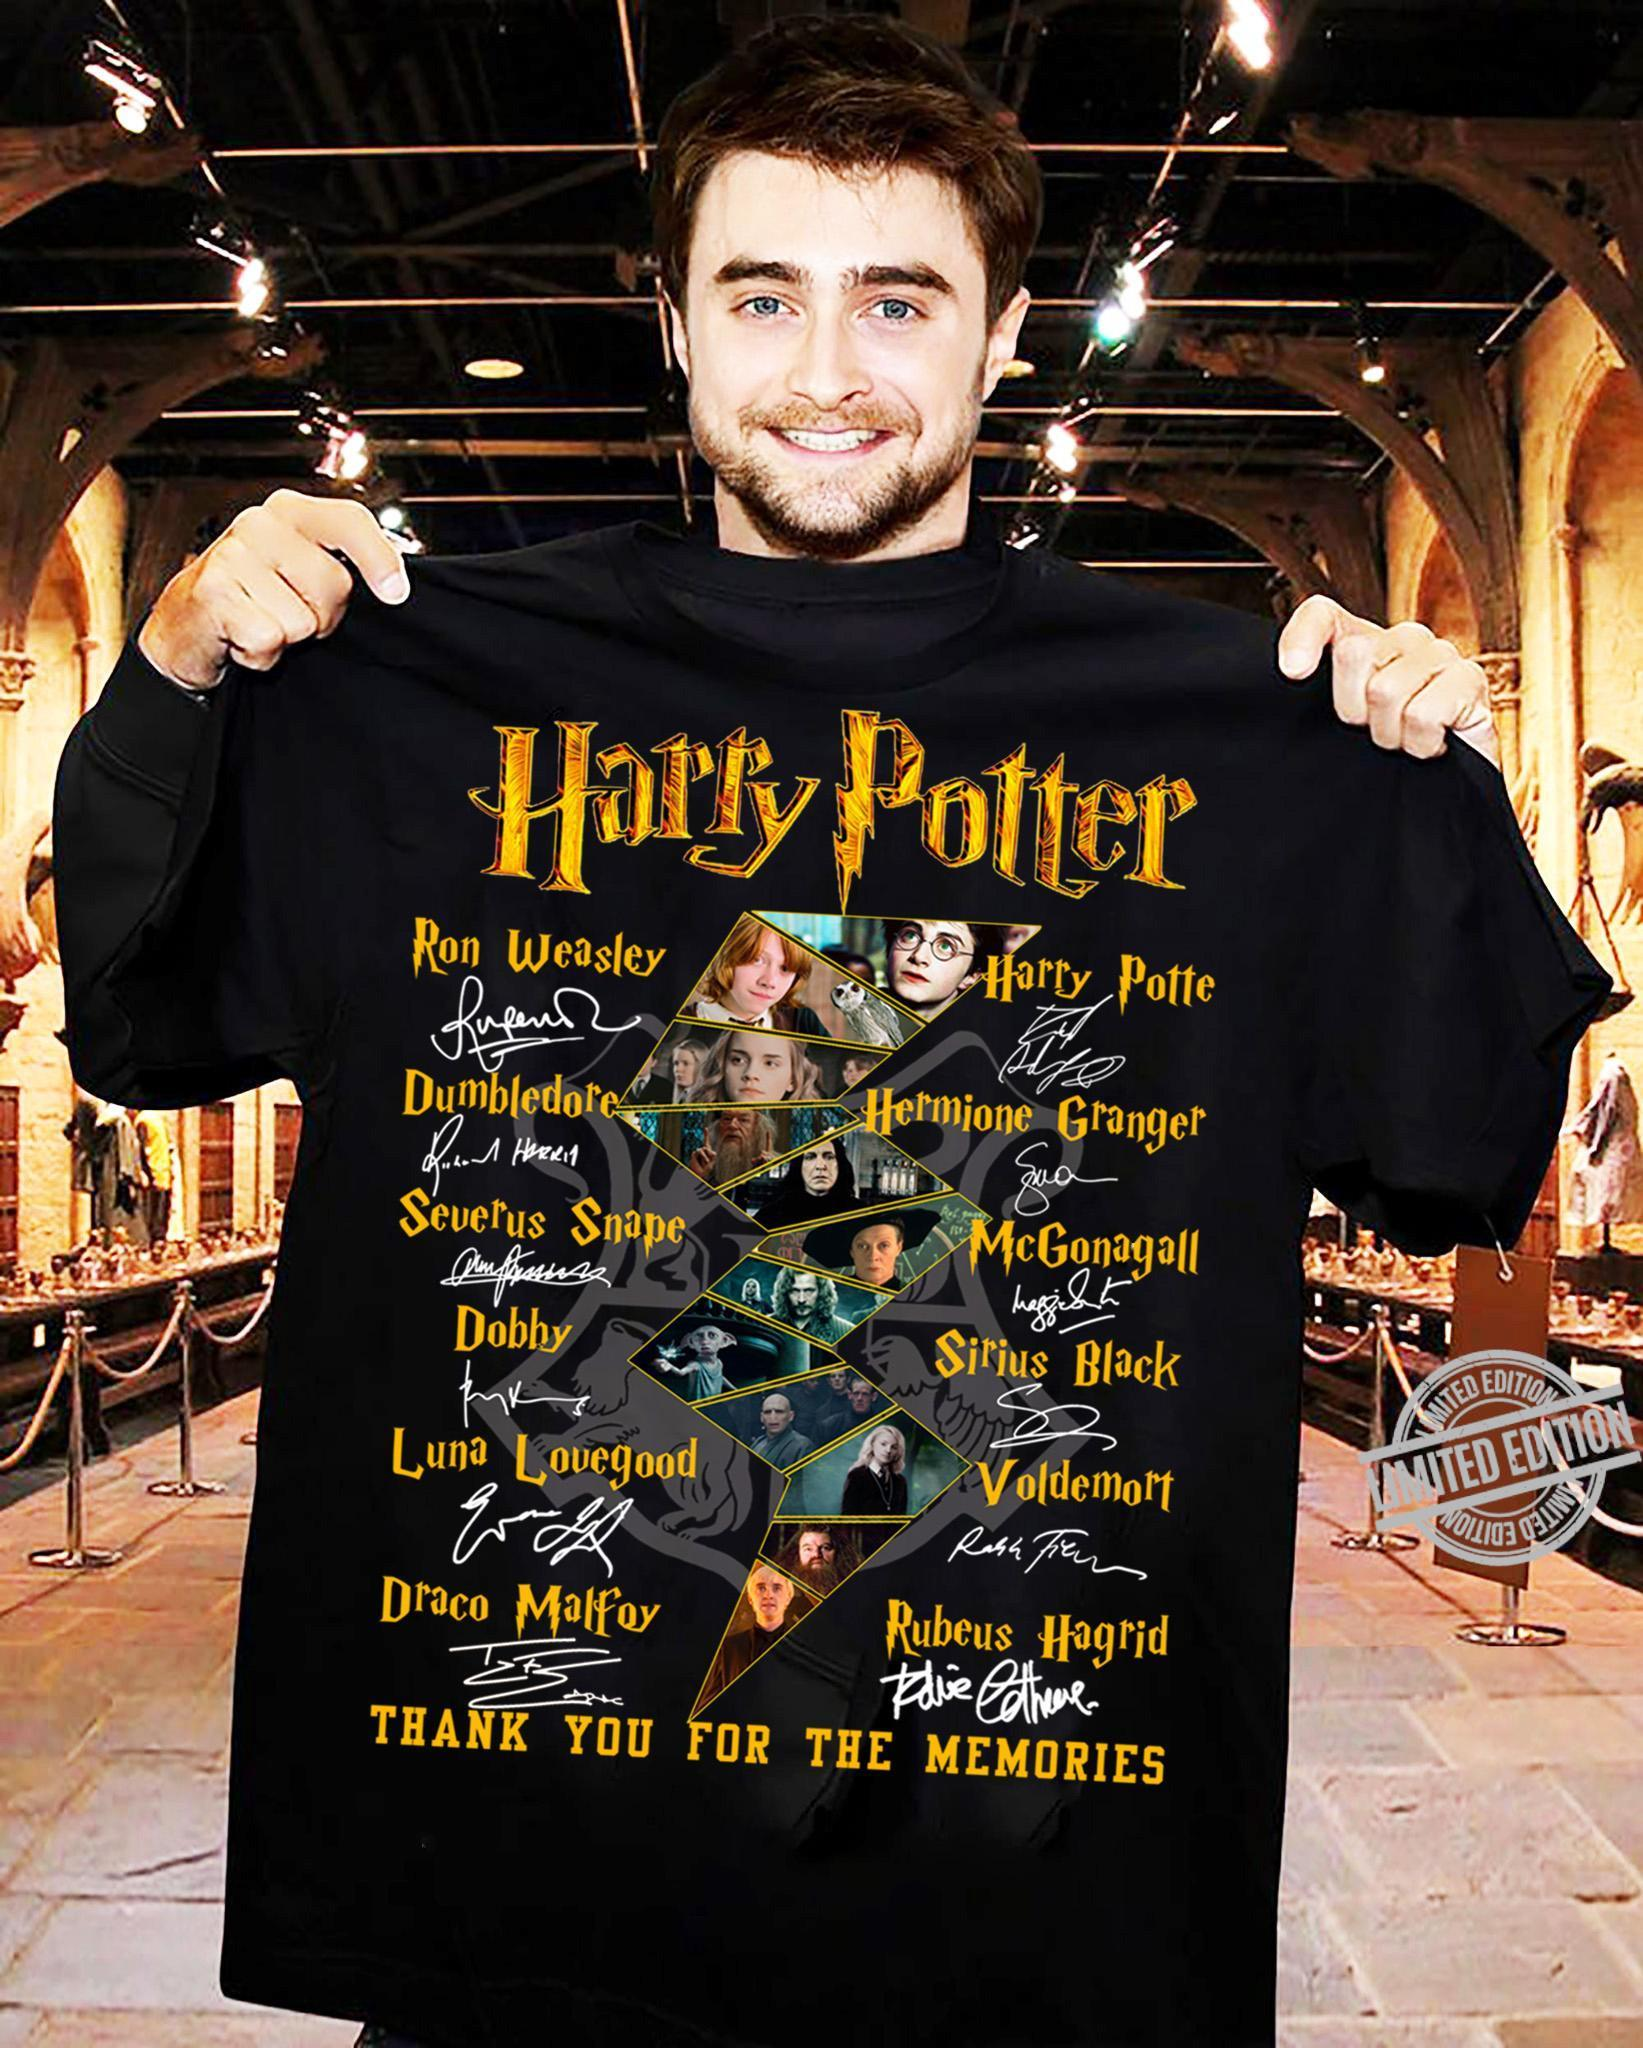 Harry Potter Members And Signatures Thank You For The Memories Shirt